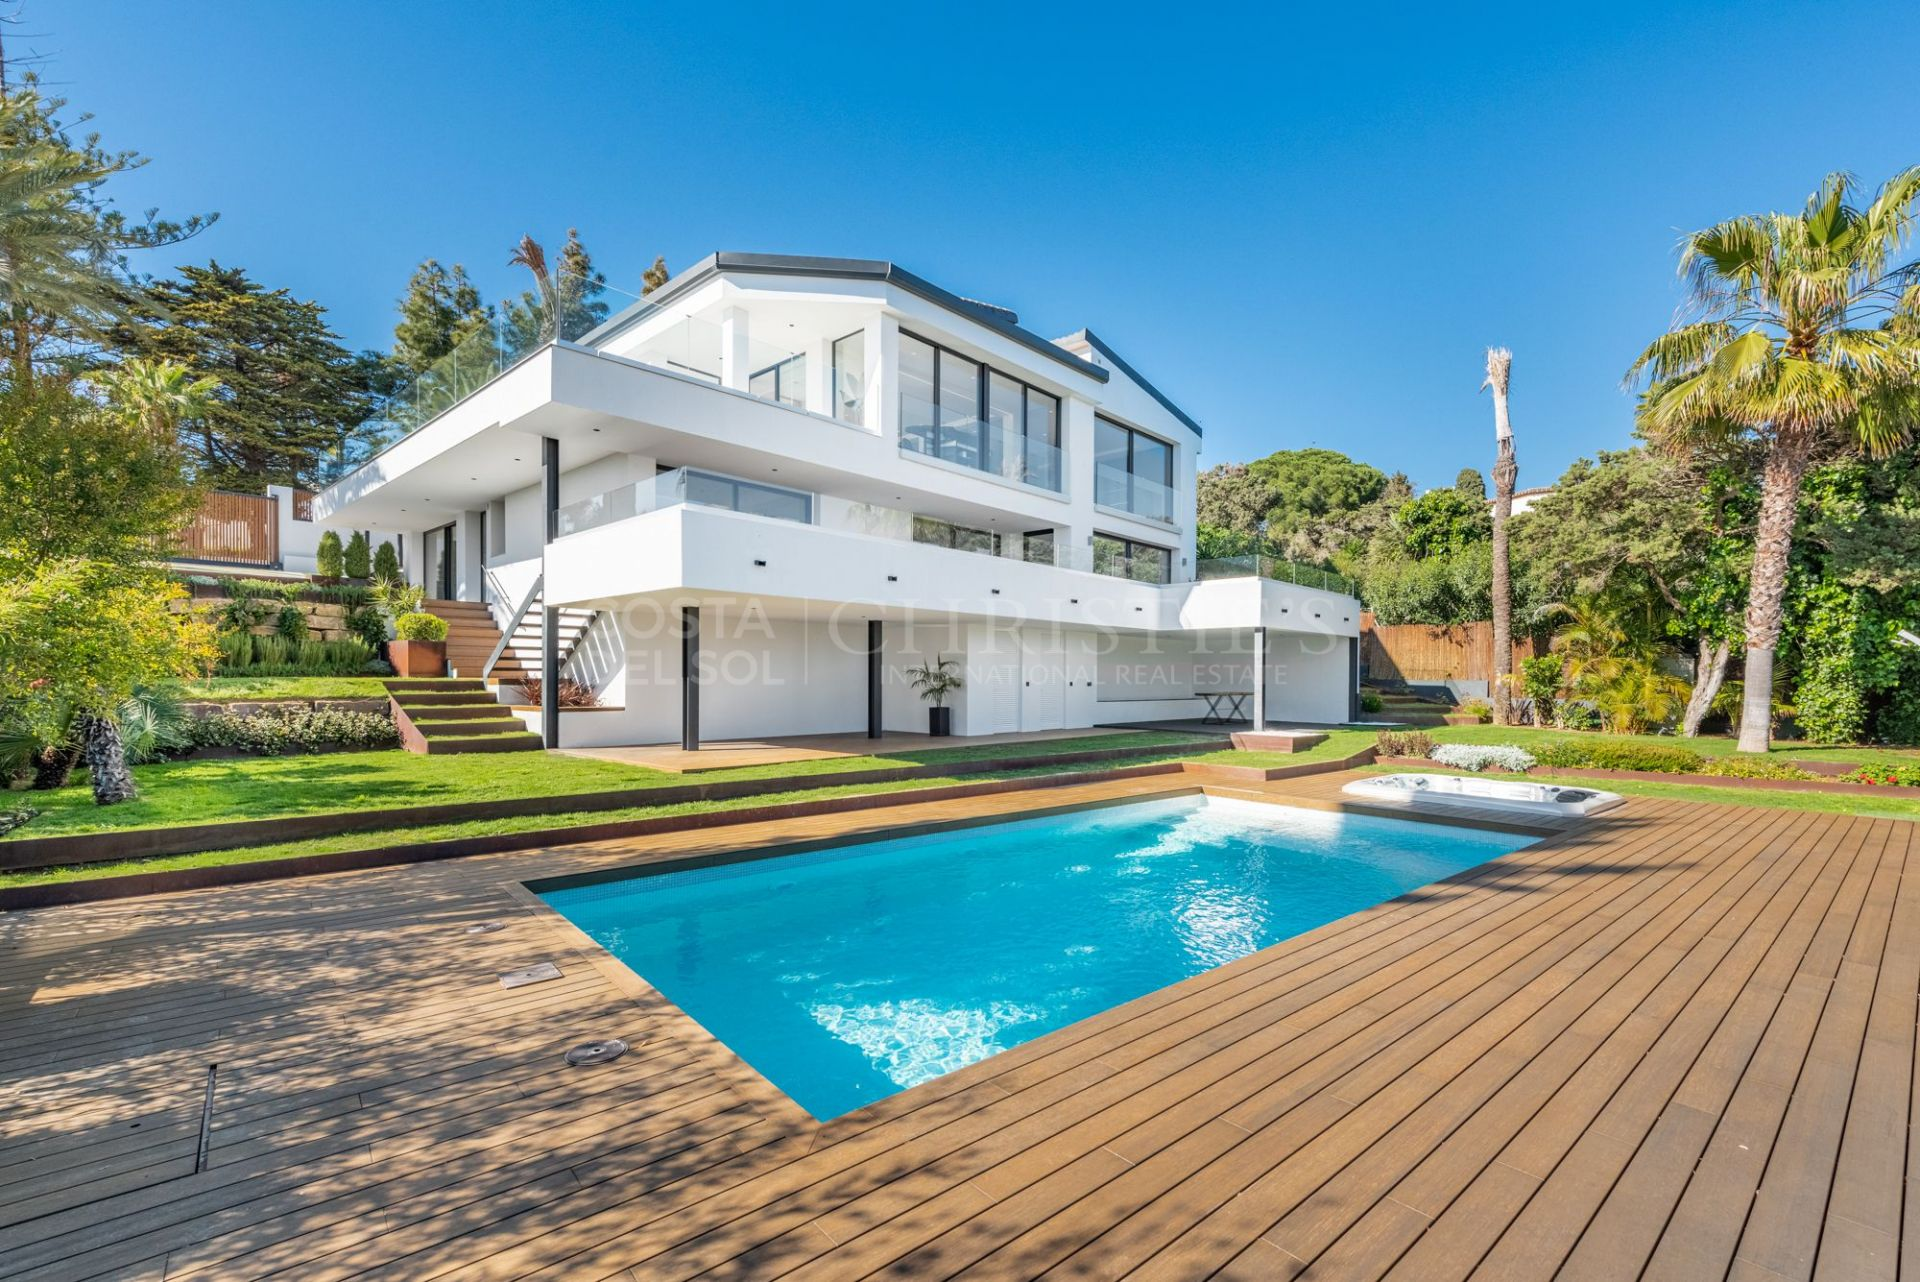 Wonderful villa with panoramic views in Marbella   Christie's International Real Estate